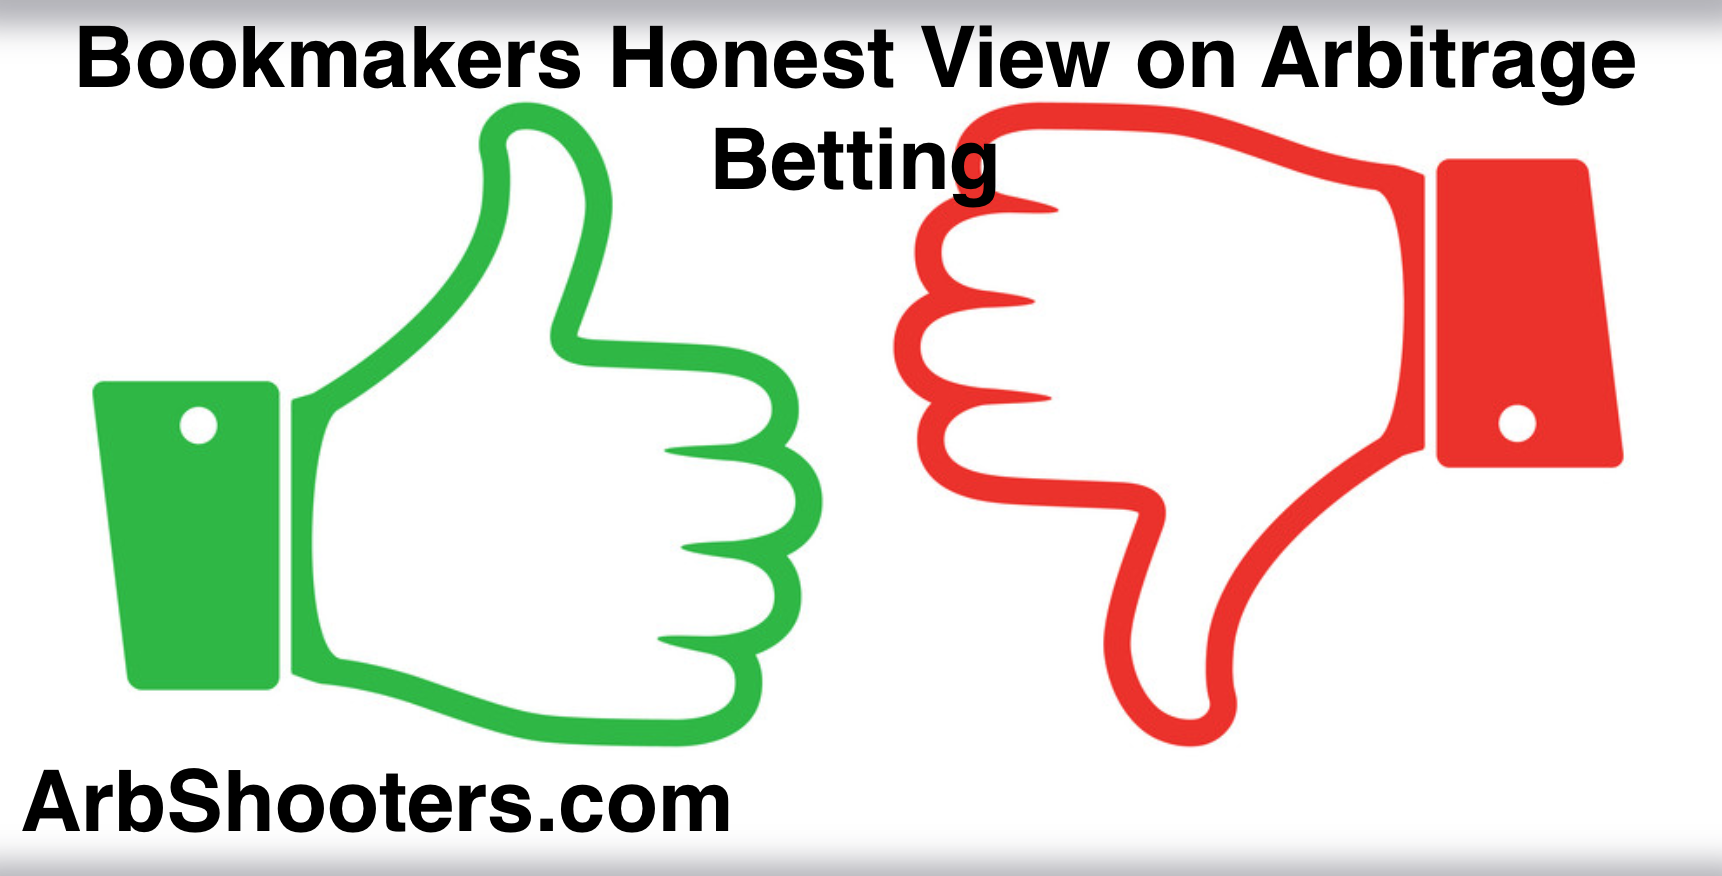 Bookmaker's Honest View on Arbitrage Bettors | Arb Shooters